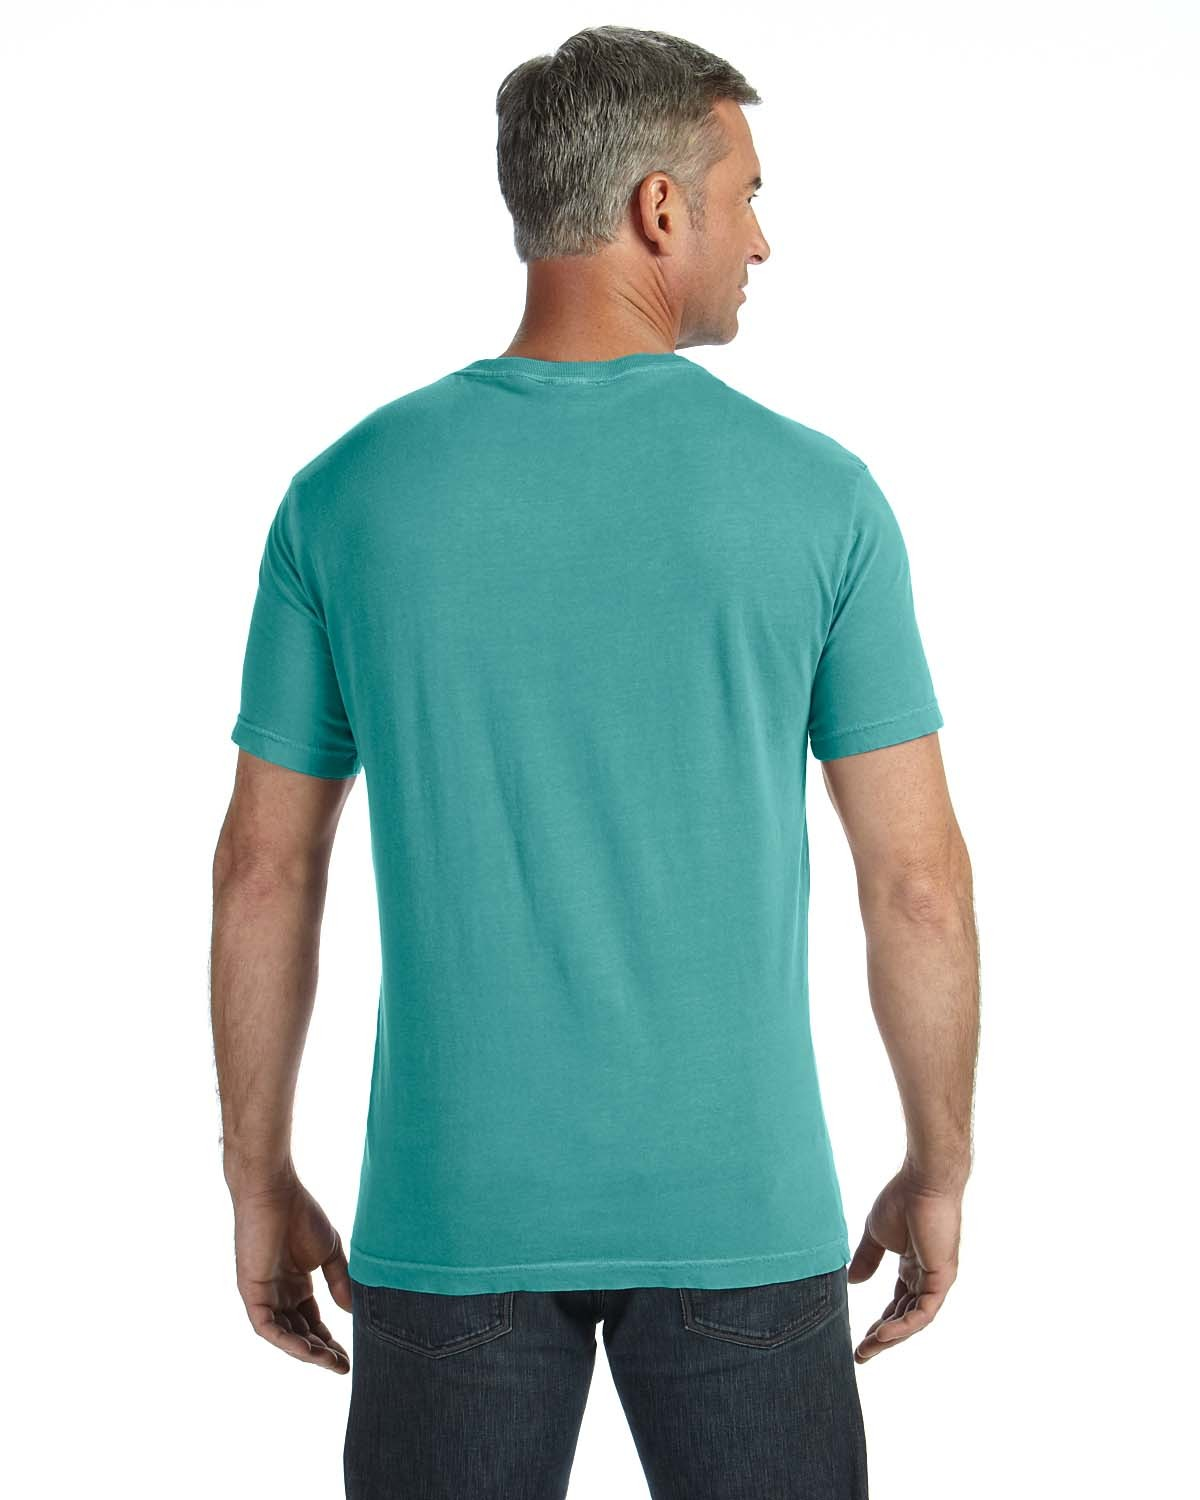 C4099 Comfort Colors SEAFOAM